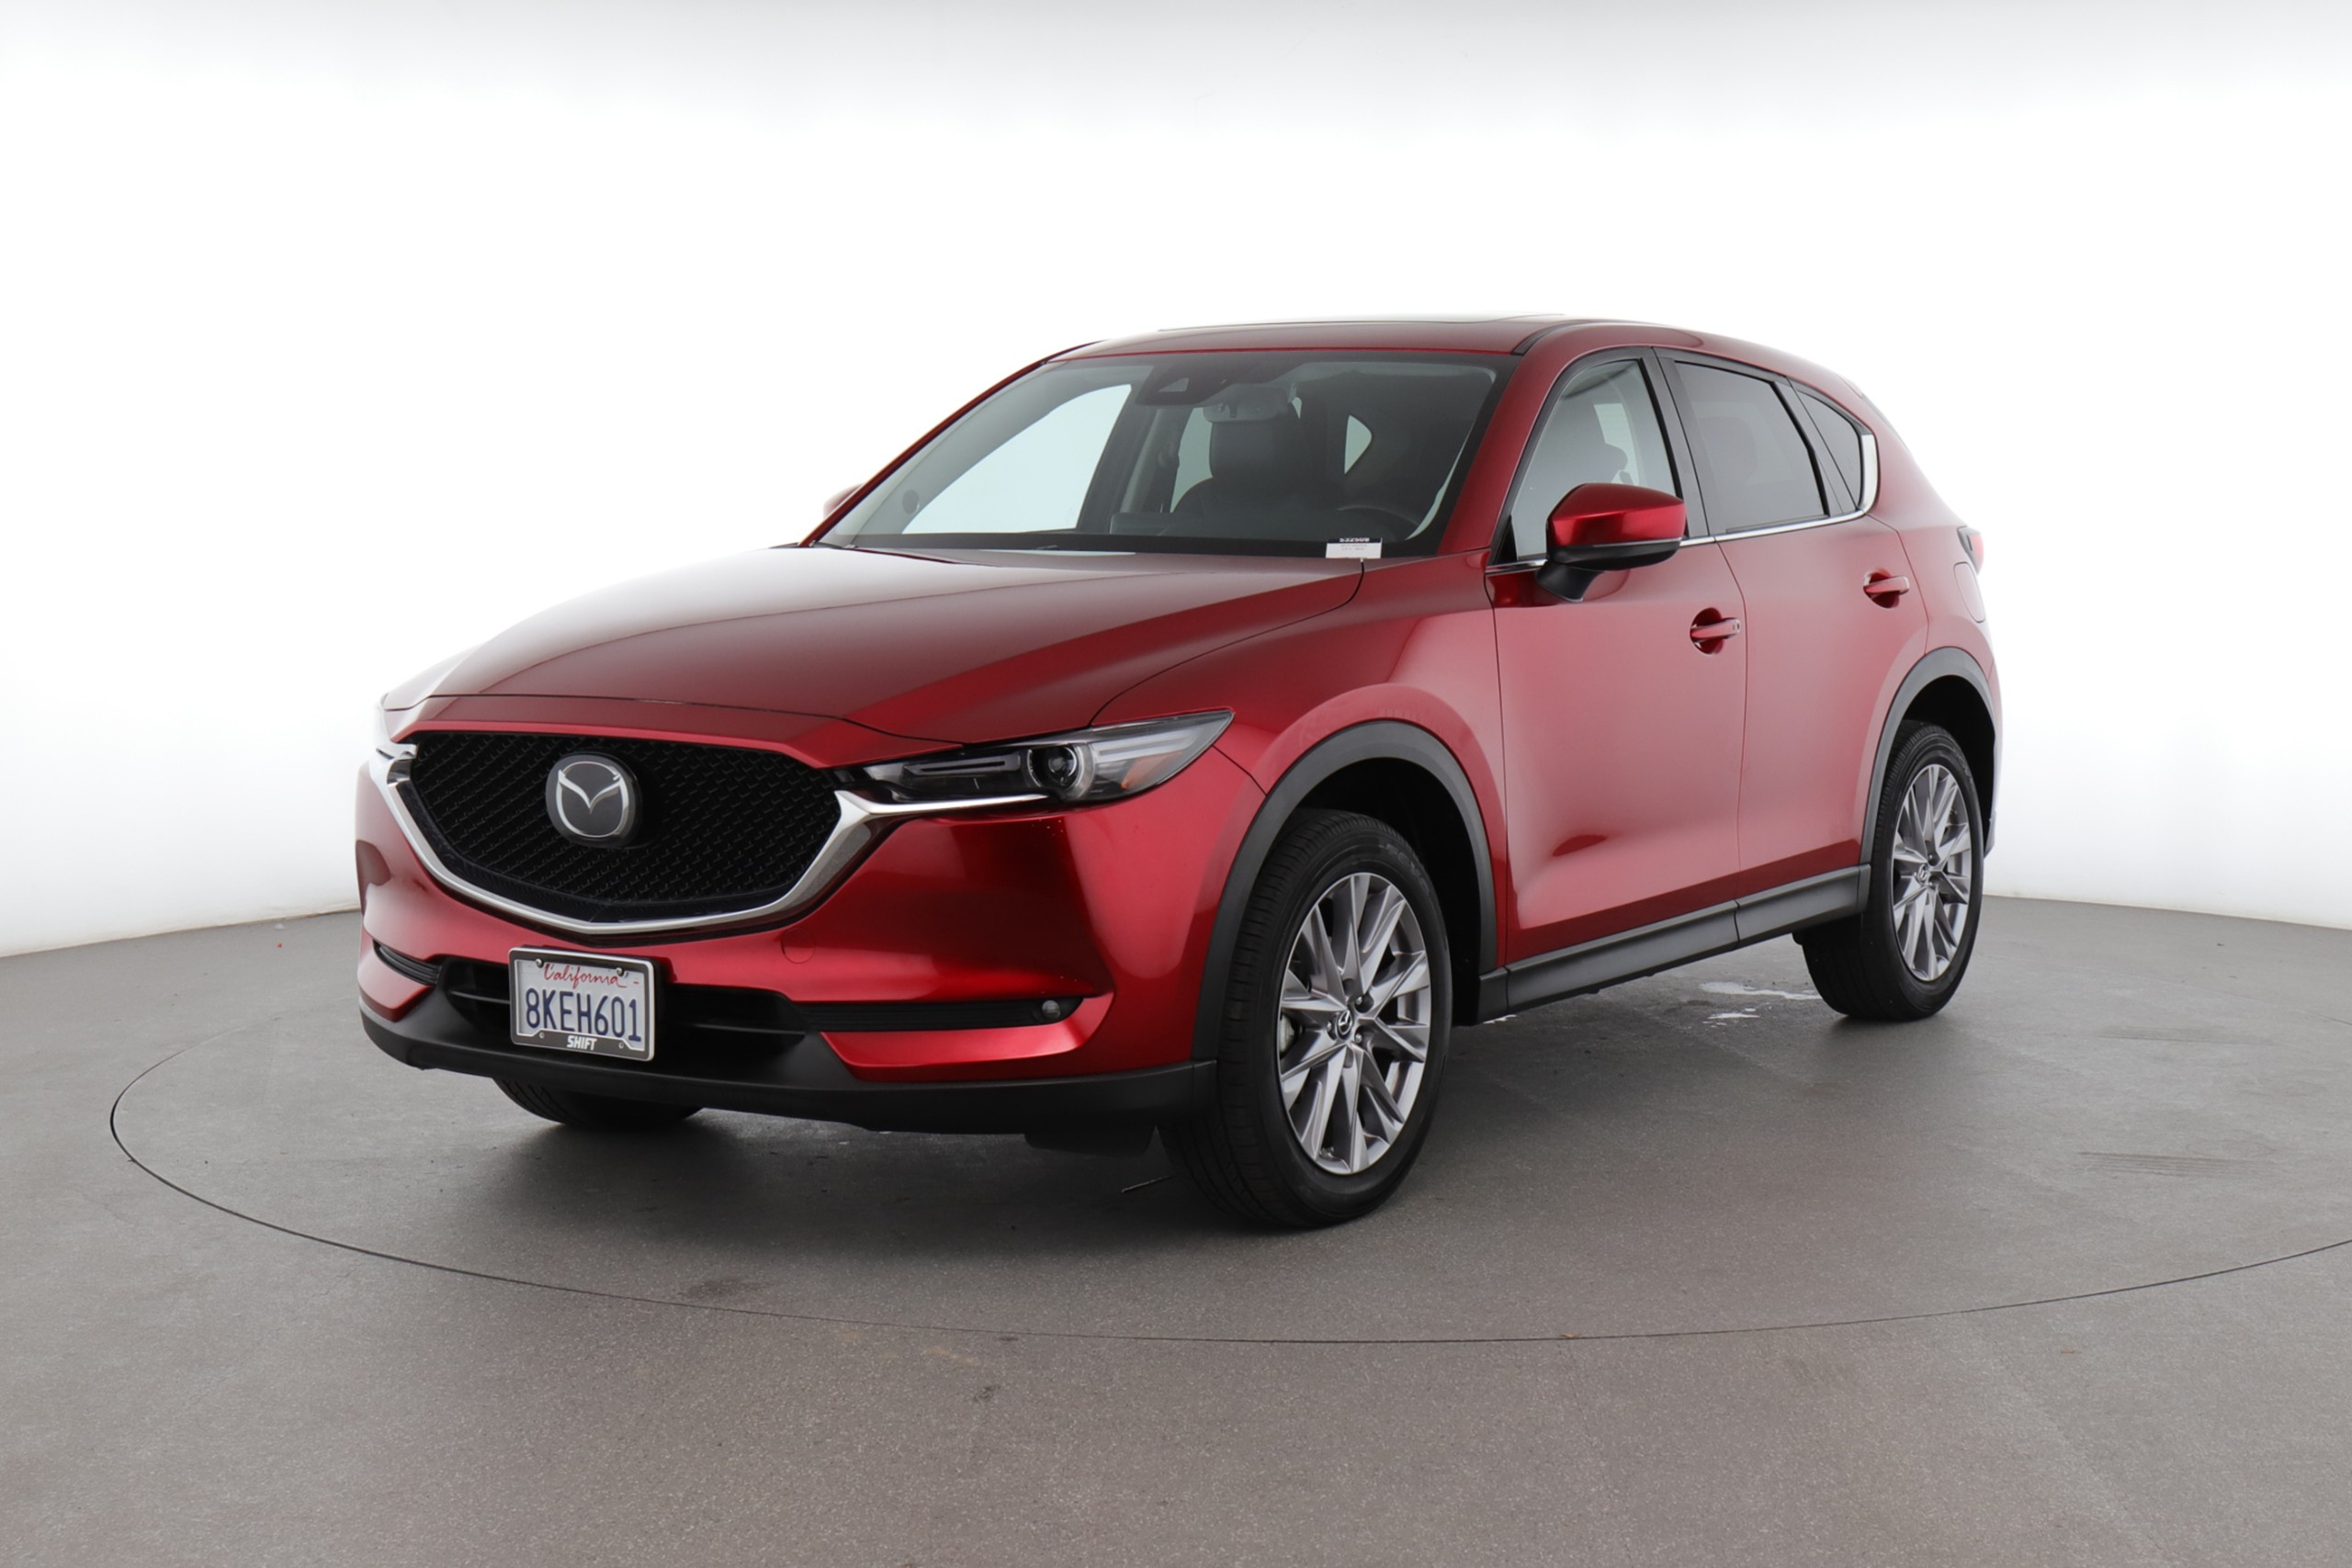 2019 Mazda CX-5 Grand Touring (from $29,950)